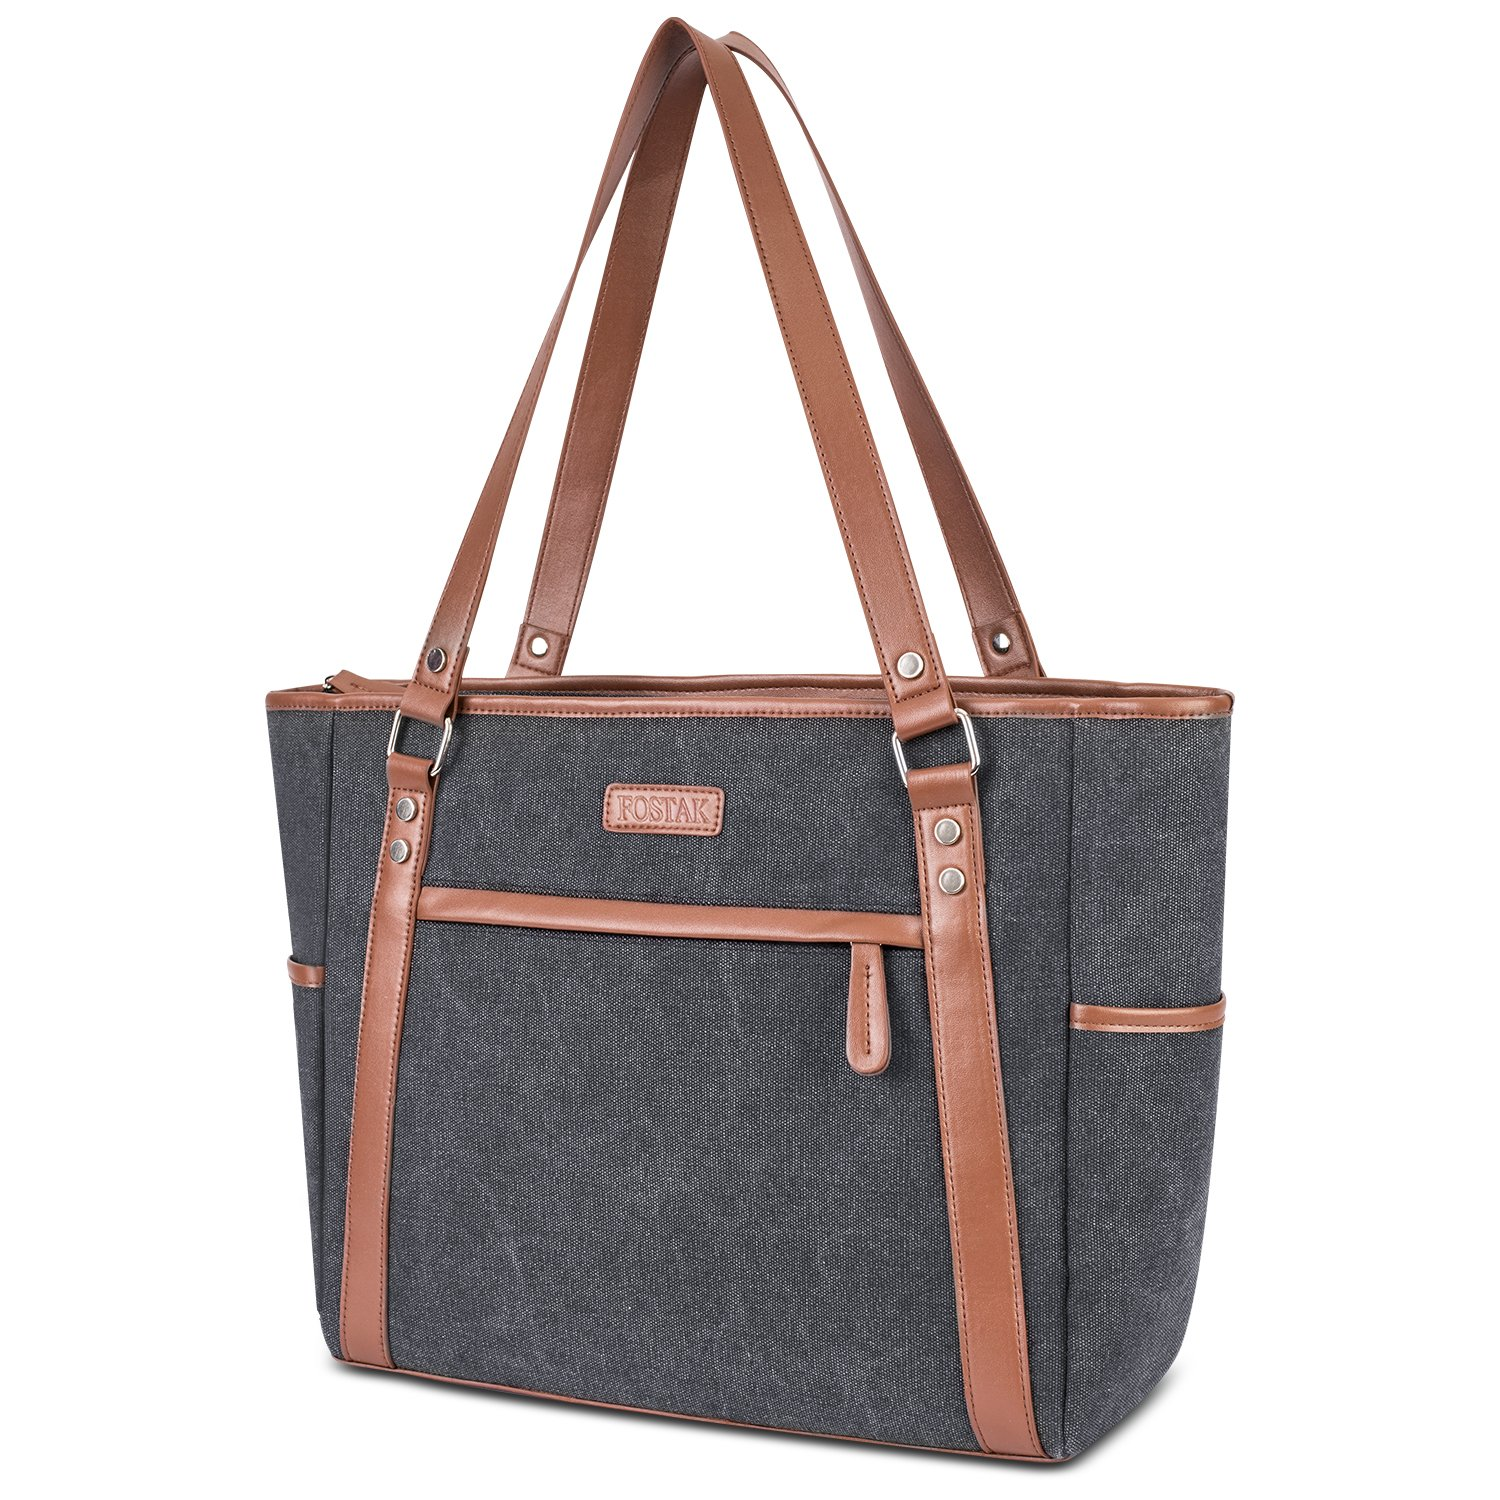 Laptop Tote Bag,15.6 inch Computer Shoulder Bag,Womens Laptop Purse Work Tote Office Briefcase Large Capacity Vintage Canvas Handbag for Business College Travel Casual Use,Gray